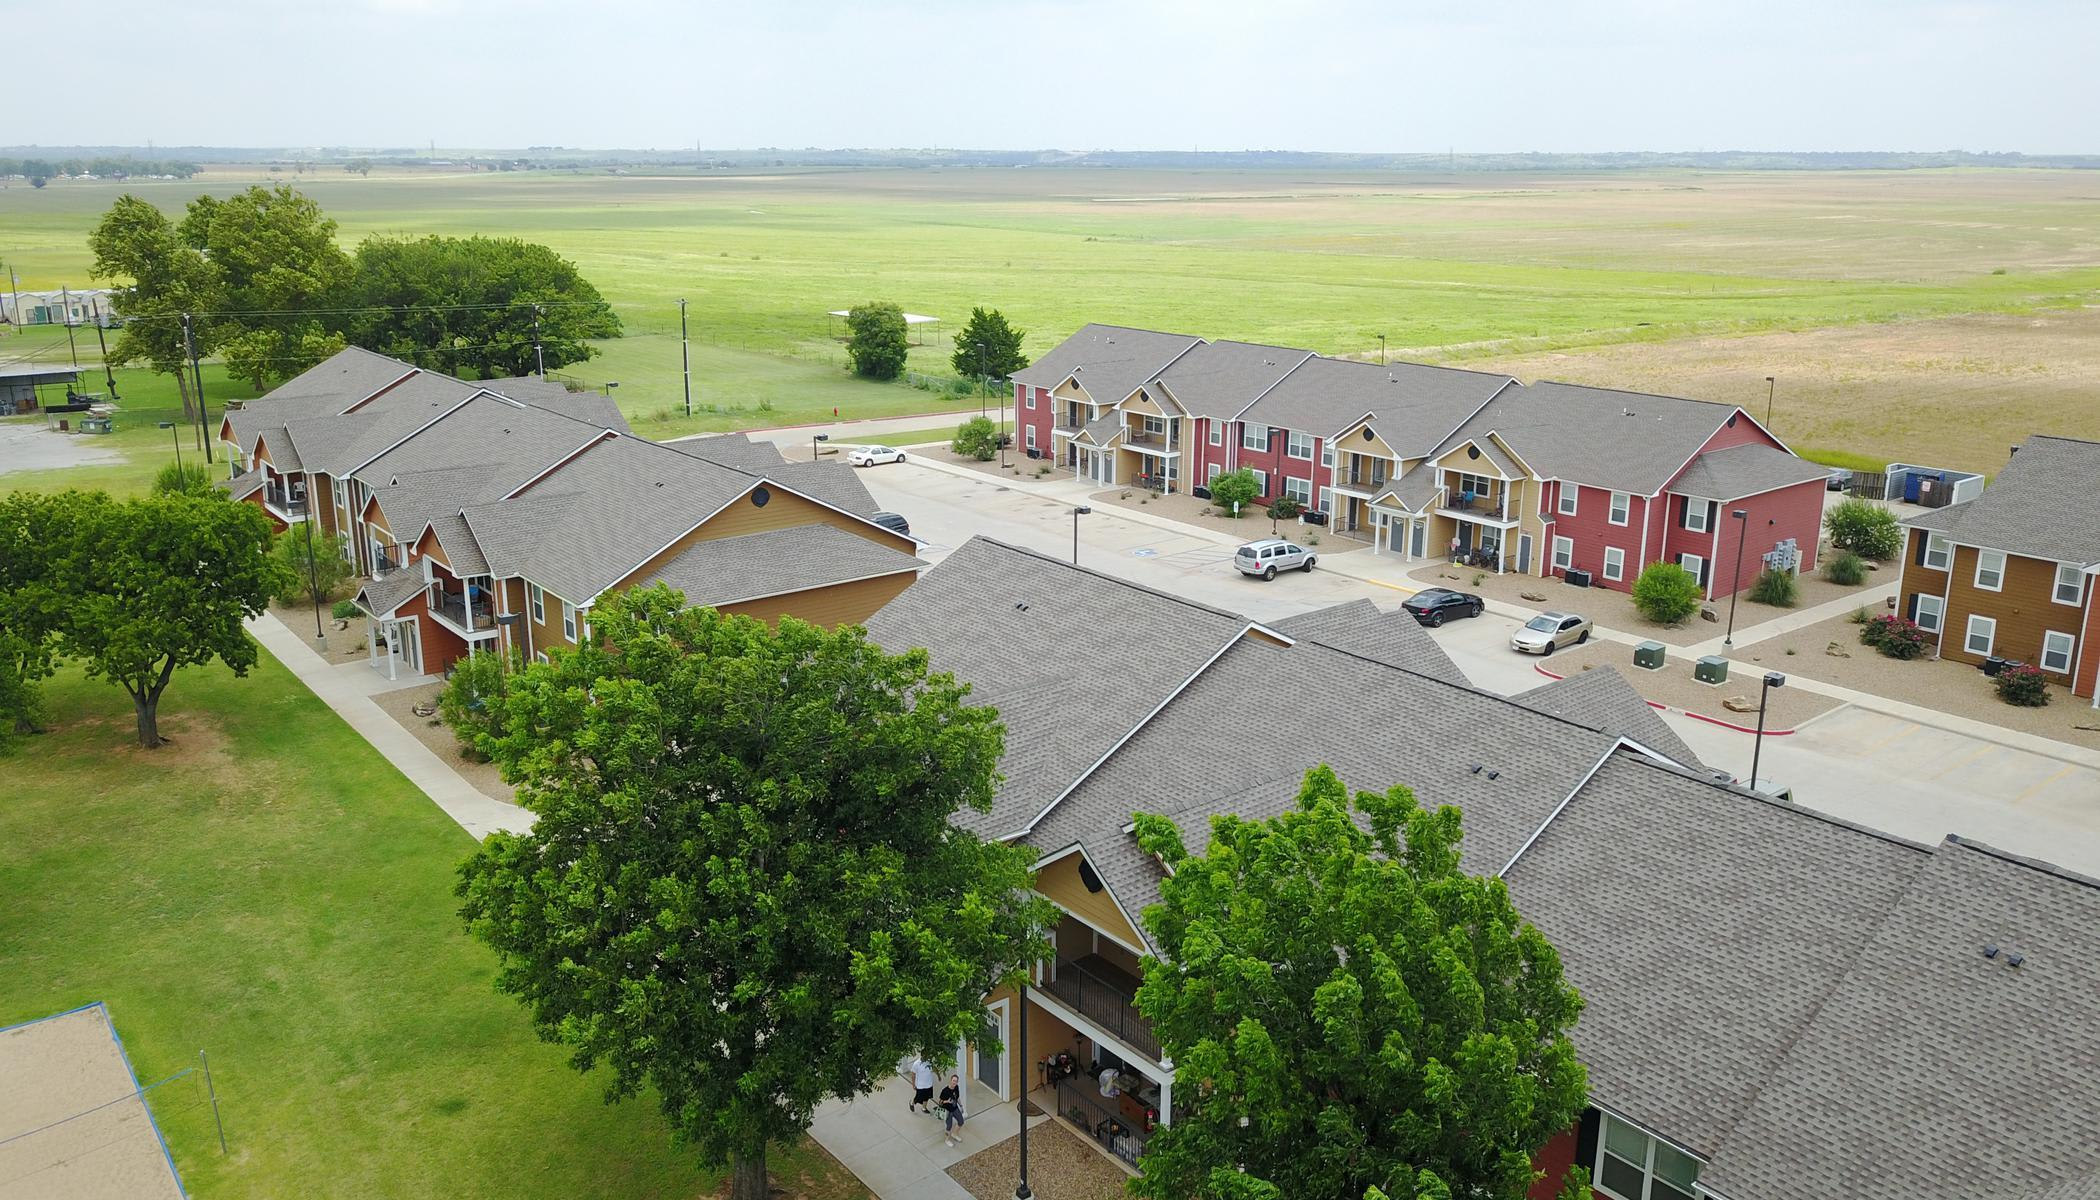 Apartments with parking lot at The Reserves at Saddlebrook